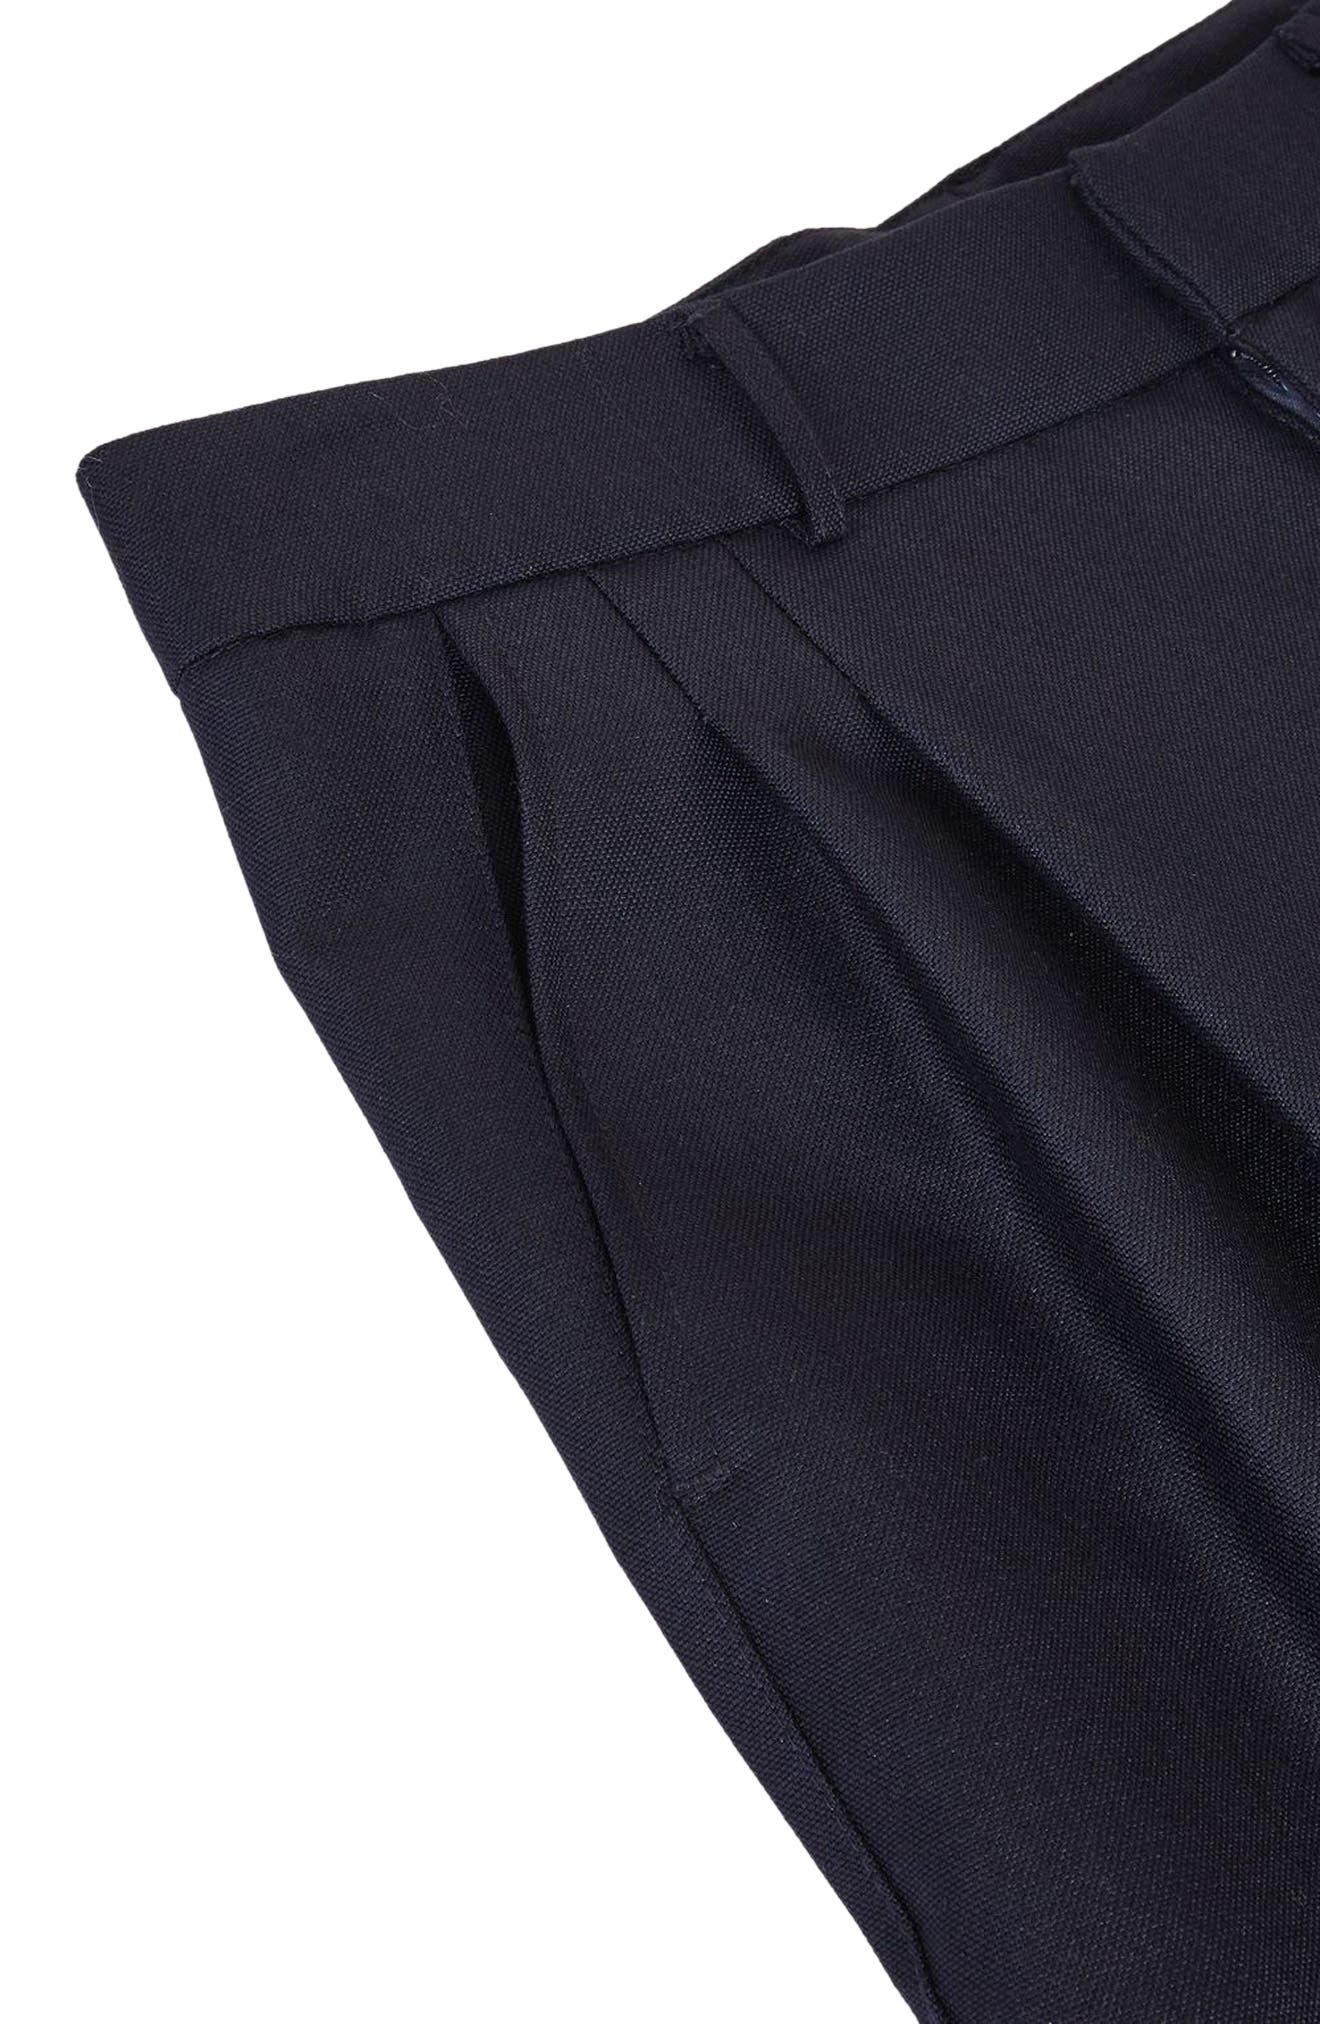 Nords Mensy Trousers,                             Alternate thumbnail 4, color,                             Navy Blue